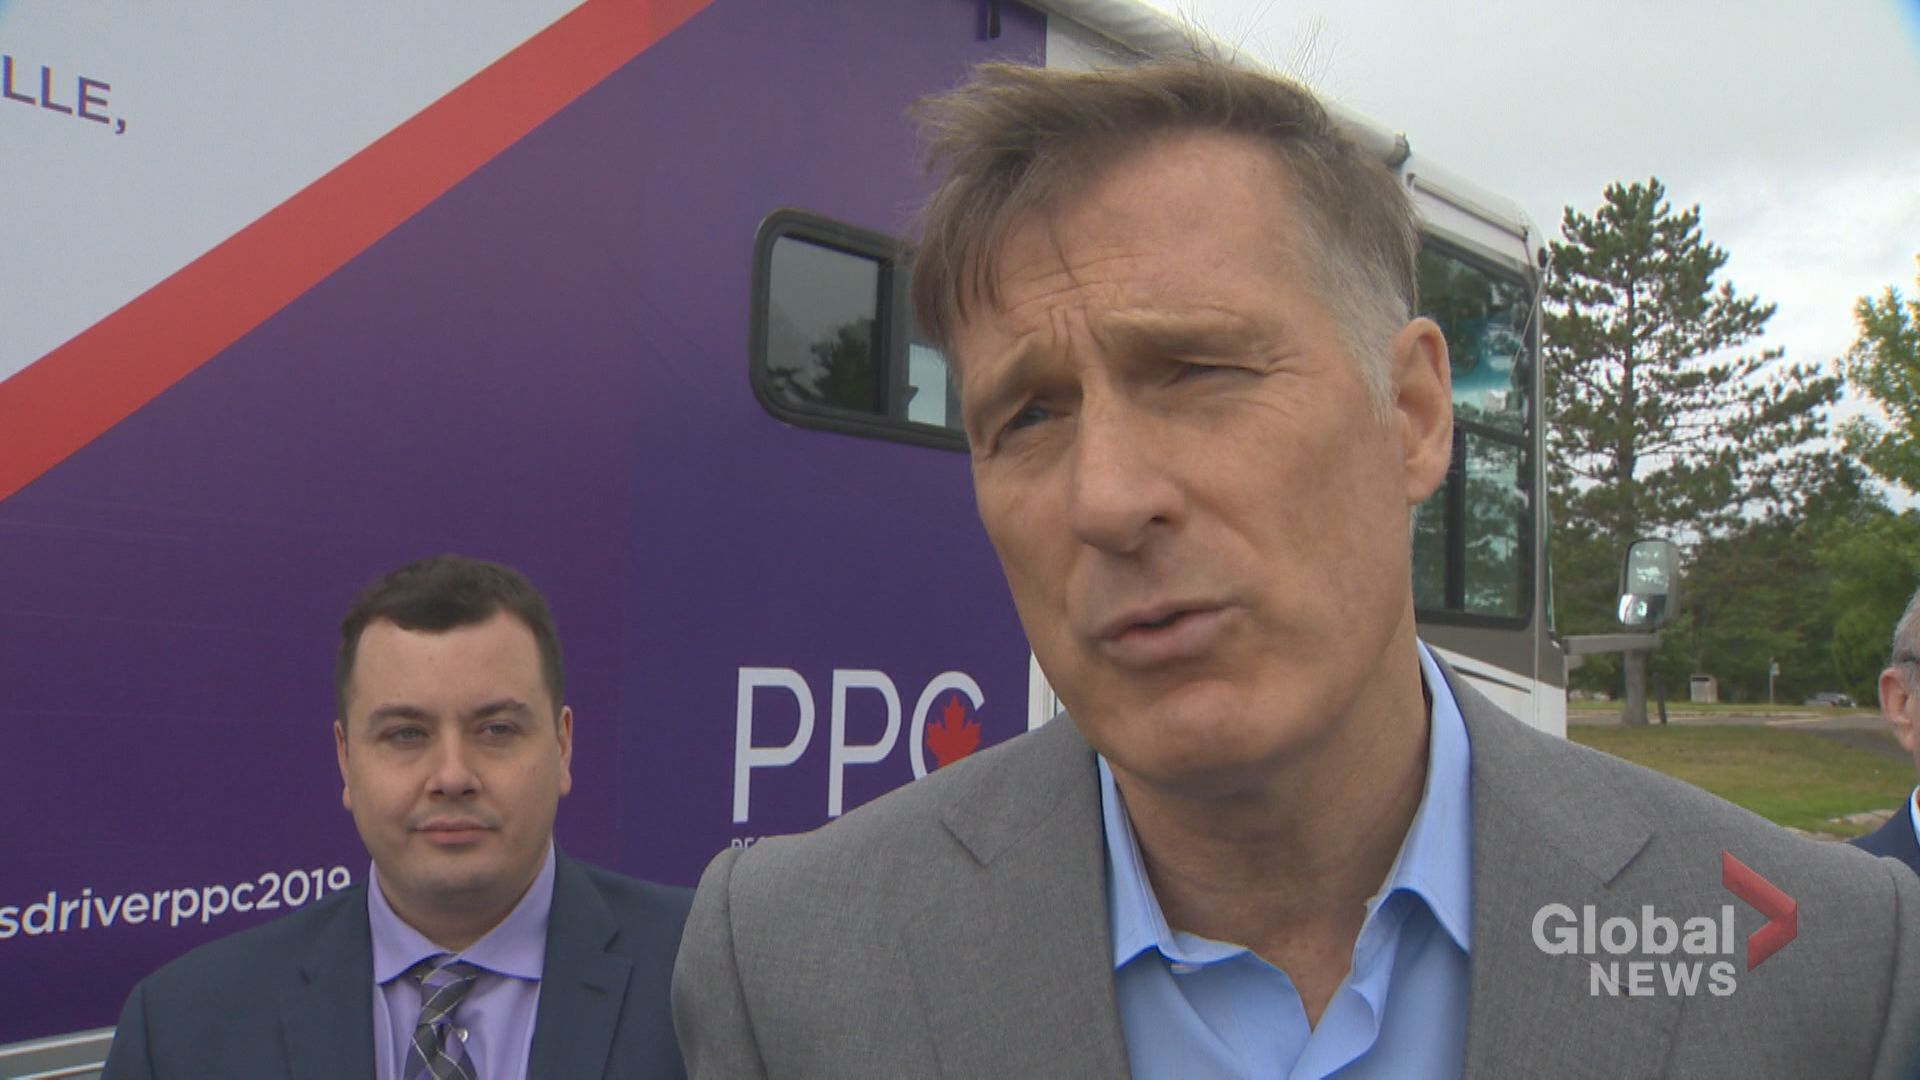 Bernier says PPC has 'momentum' after being included in national debates